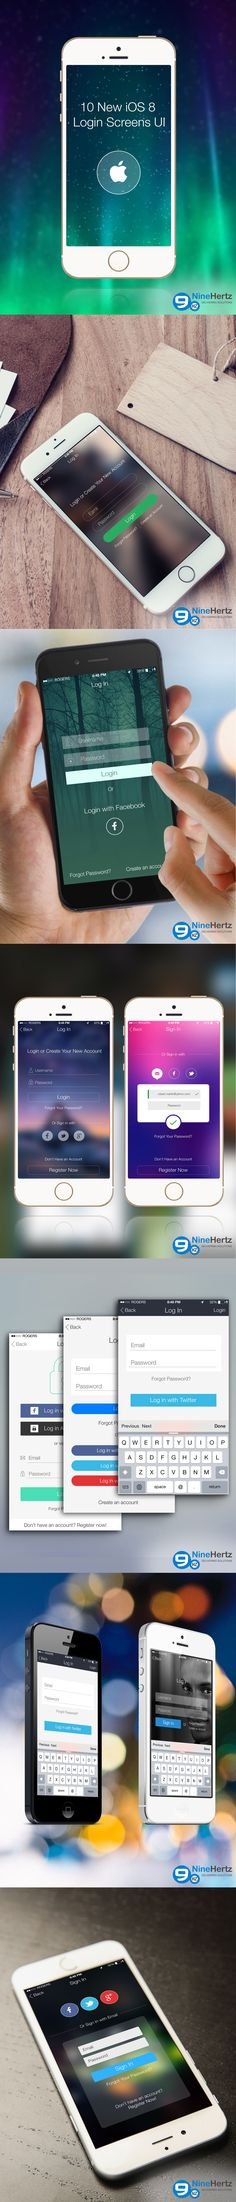 Cut down your design efforts by using this FREE iOS 8 UI PSD, created by Nine Hertz, a mobile app development company. With this FREE PSD, you don't need to scratch your head in guessing unique login screens for each iOS 8 app.     The PSD contains 10 unique design for Login Screen, al